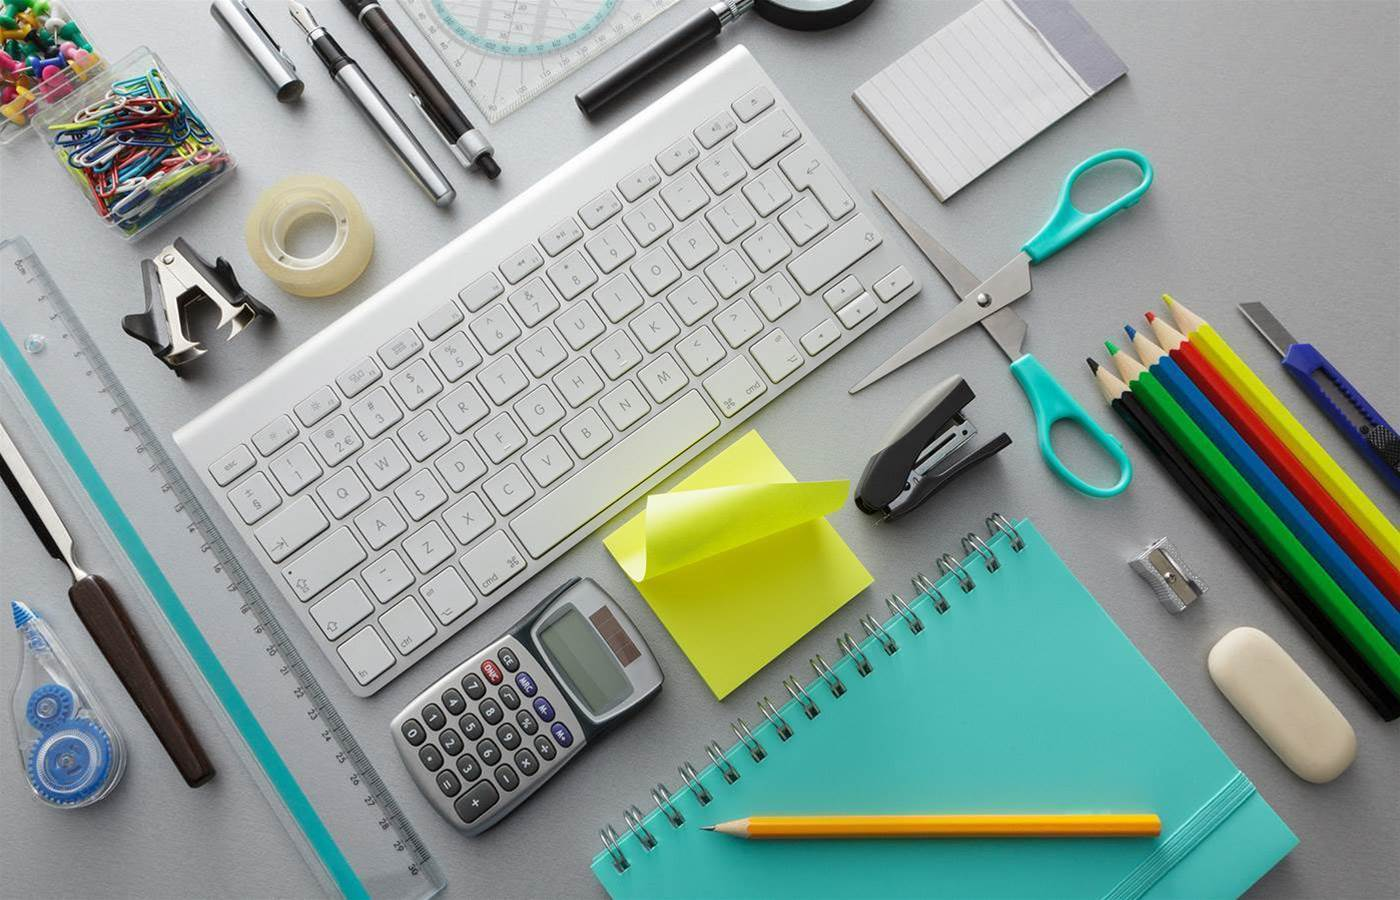 Complete Office Supplies acquires rival to form $200m company